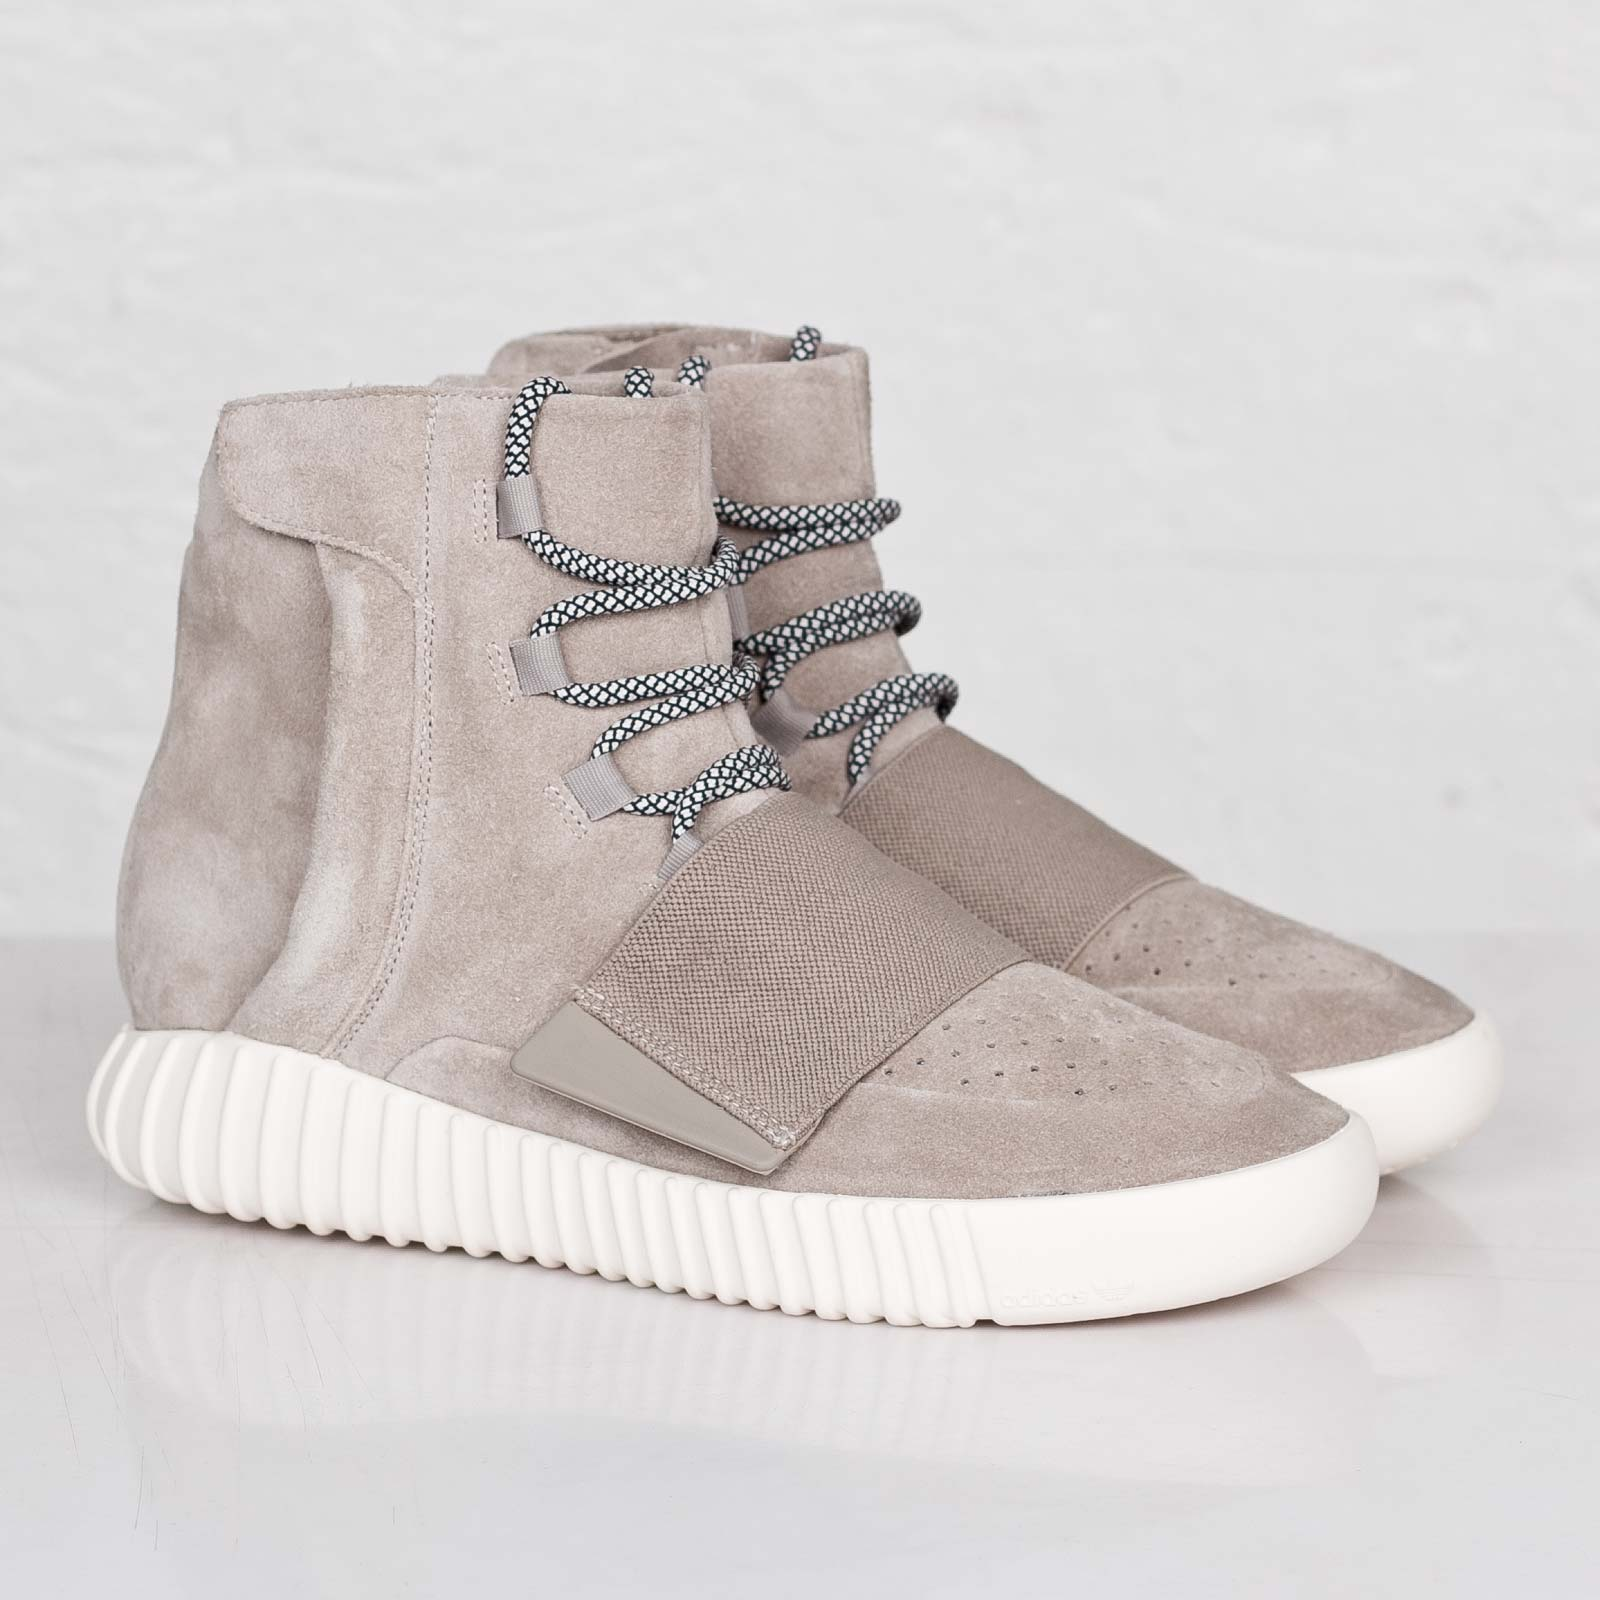 adidas Originals x Kanye West Yeezy 750 Boost